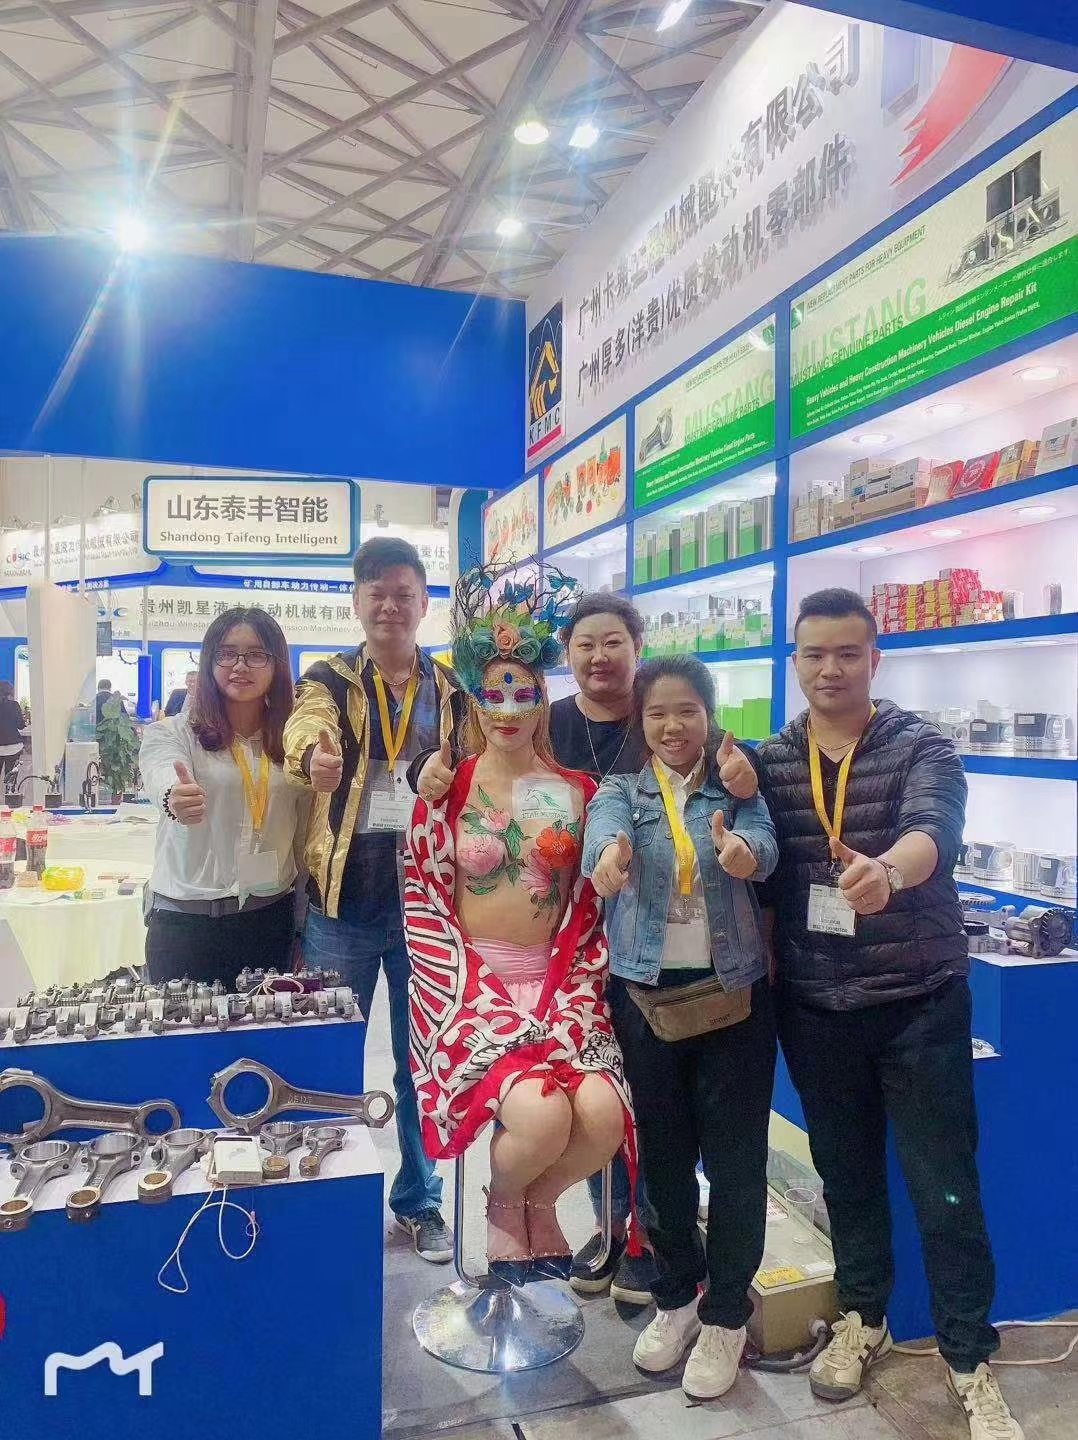 Shanghai Bauma Exhibition 2018 Heavy Machinery and Excavavtor Diesel Engine Spare Parts